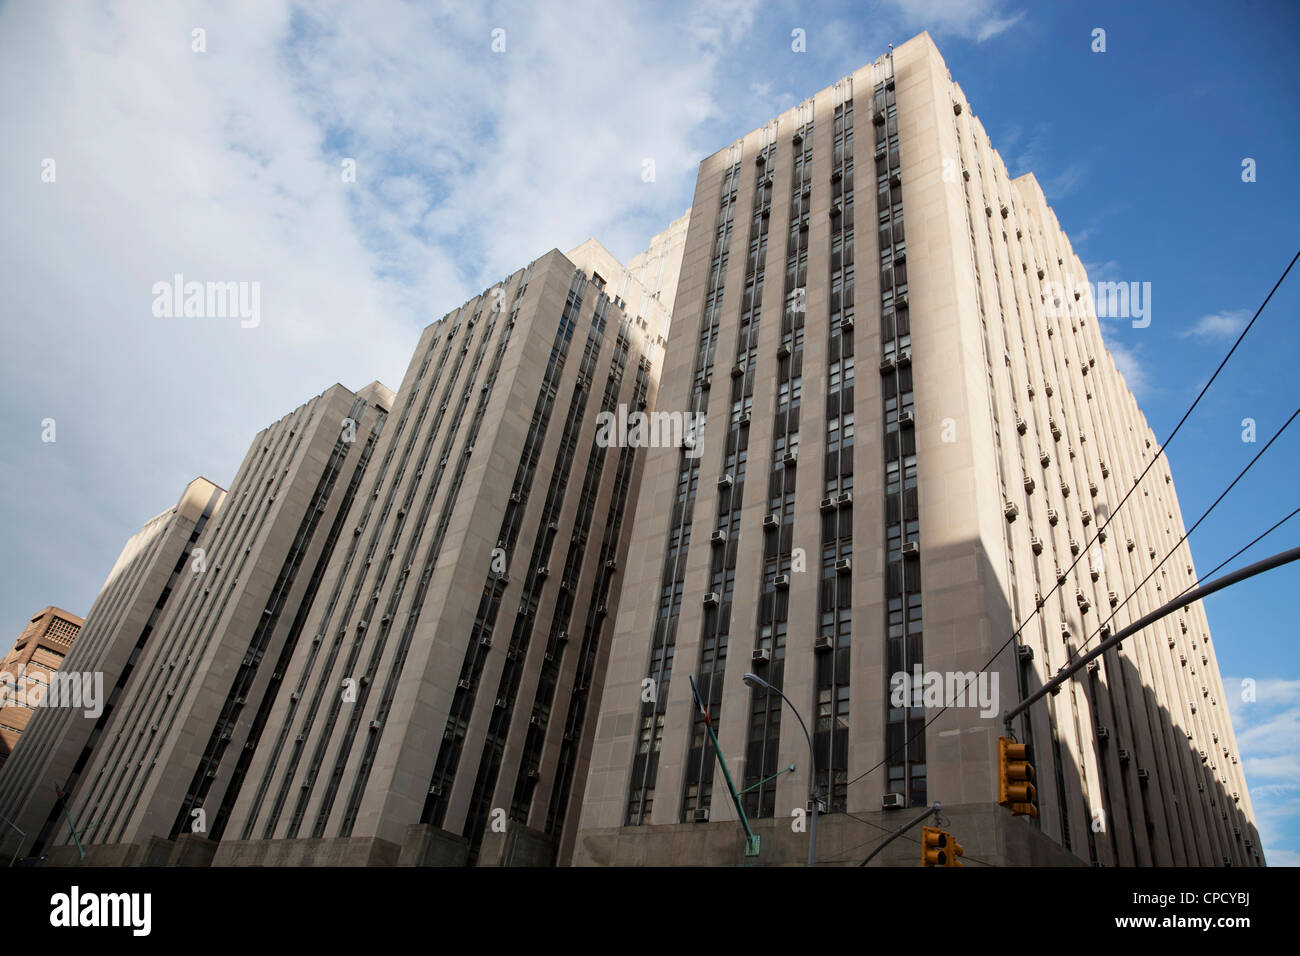 Criminal Courts Building at 100 Centre Street in Manhattan, New York City - Stock Image